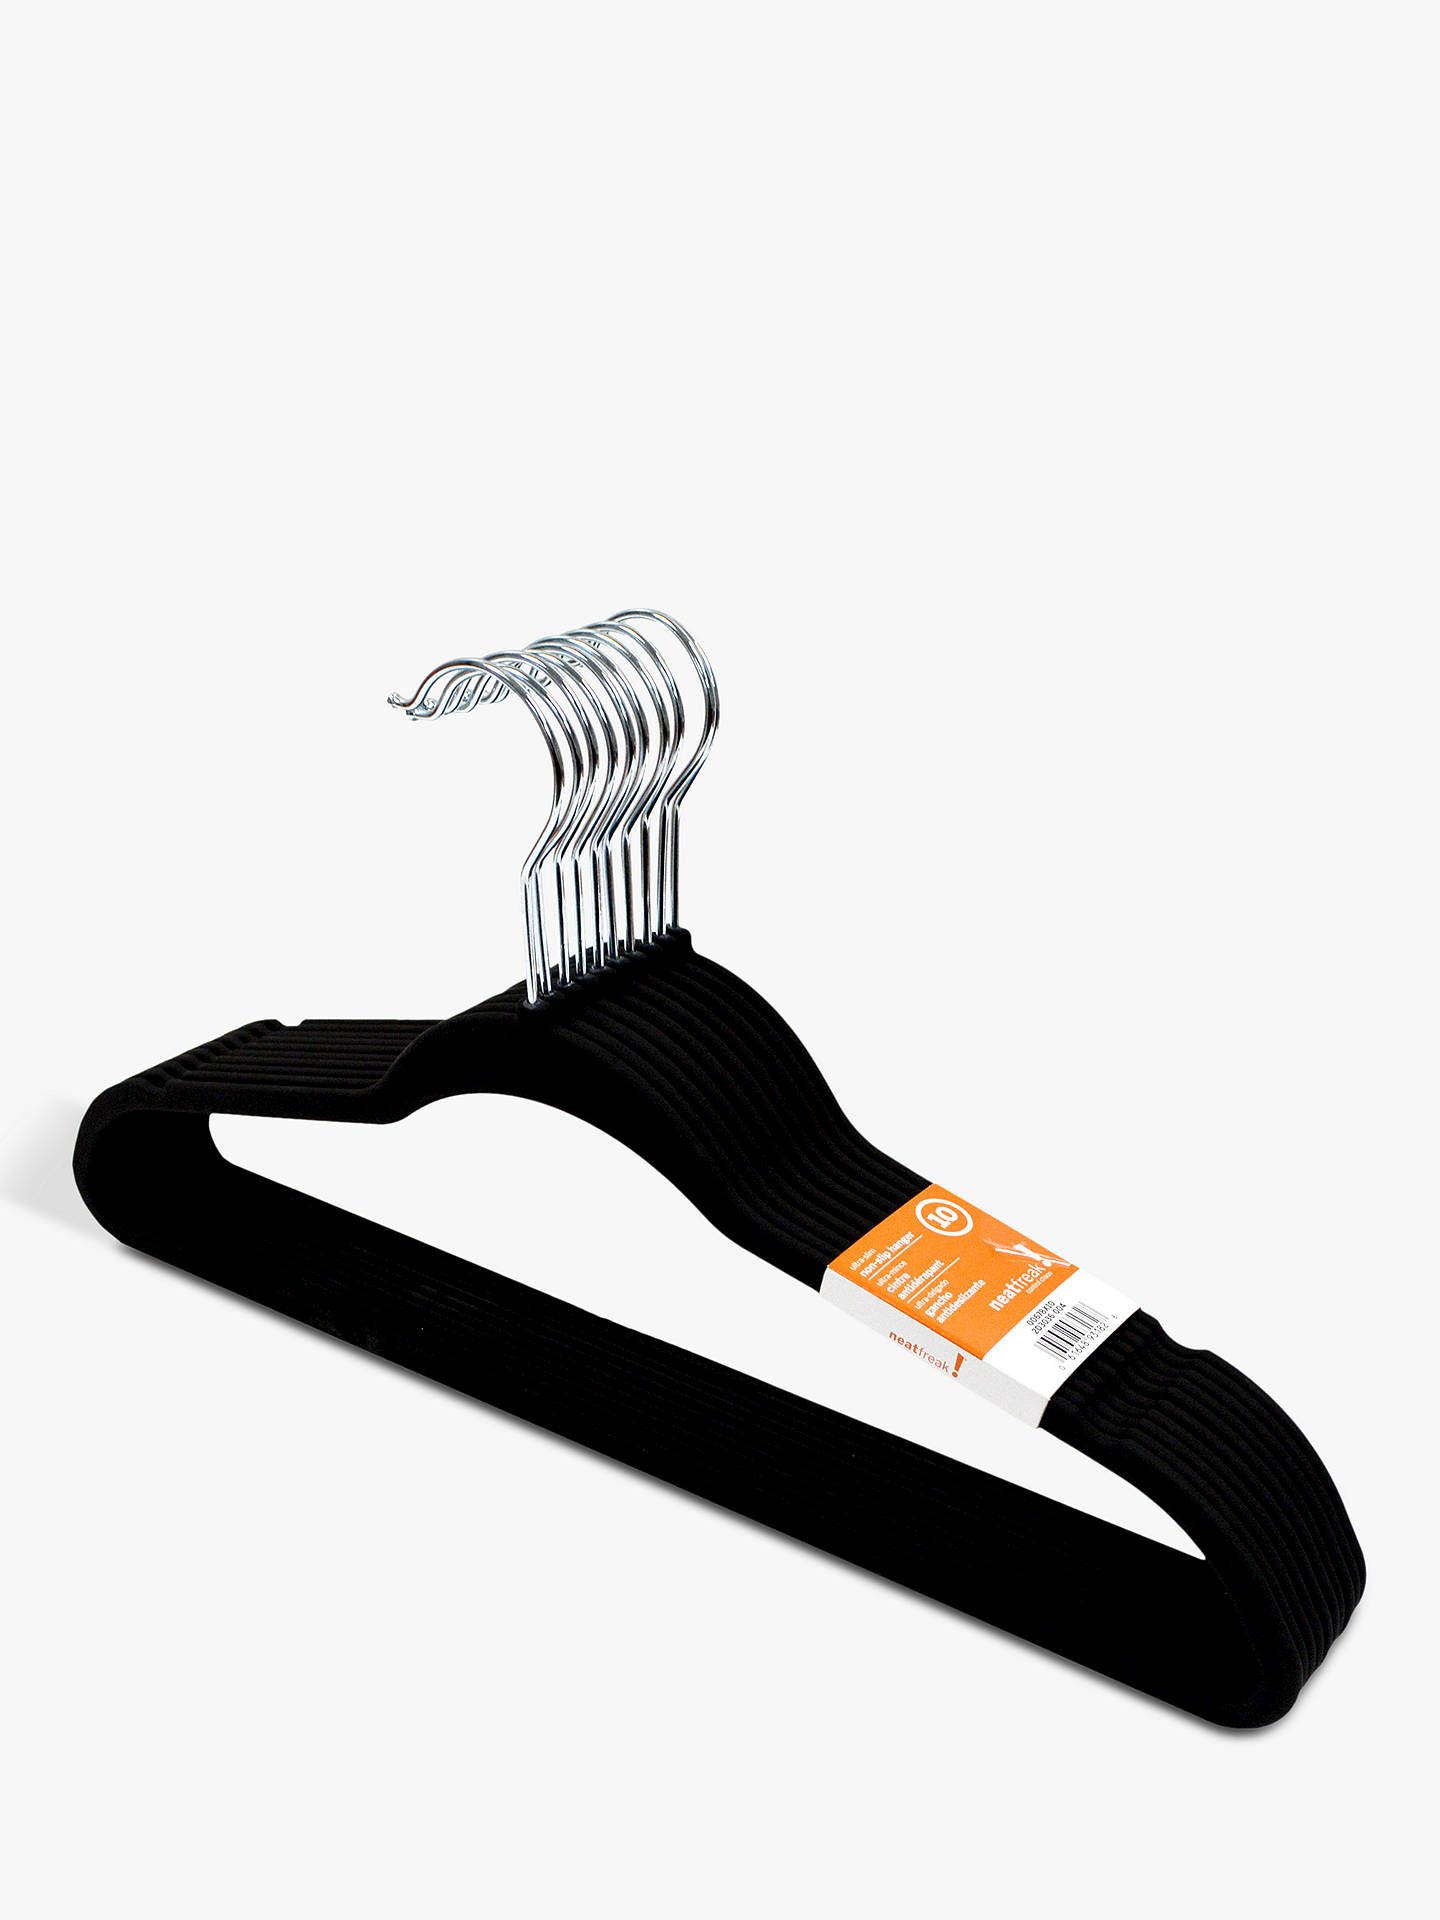 Buy neatfreak! Rubberised Hanger, Pack of 10, Black Online at johnlewis.com